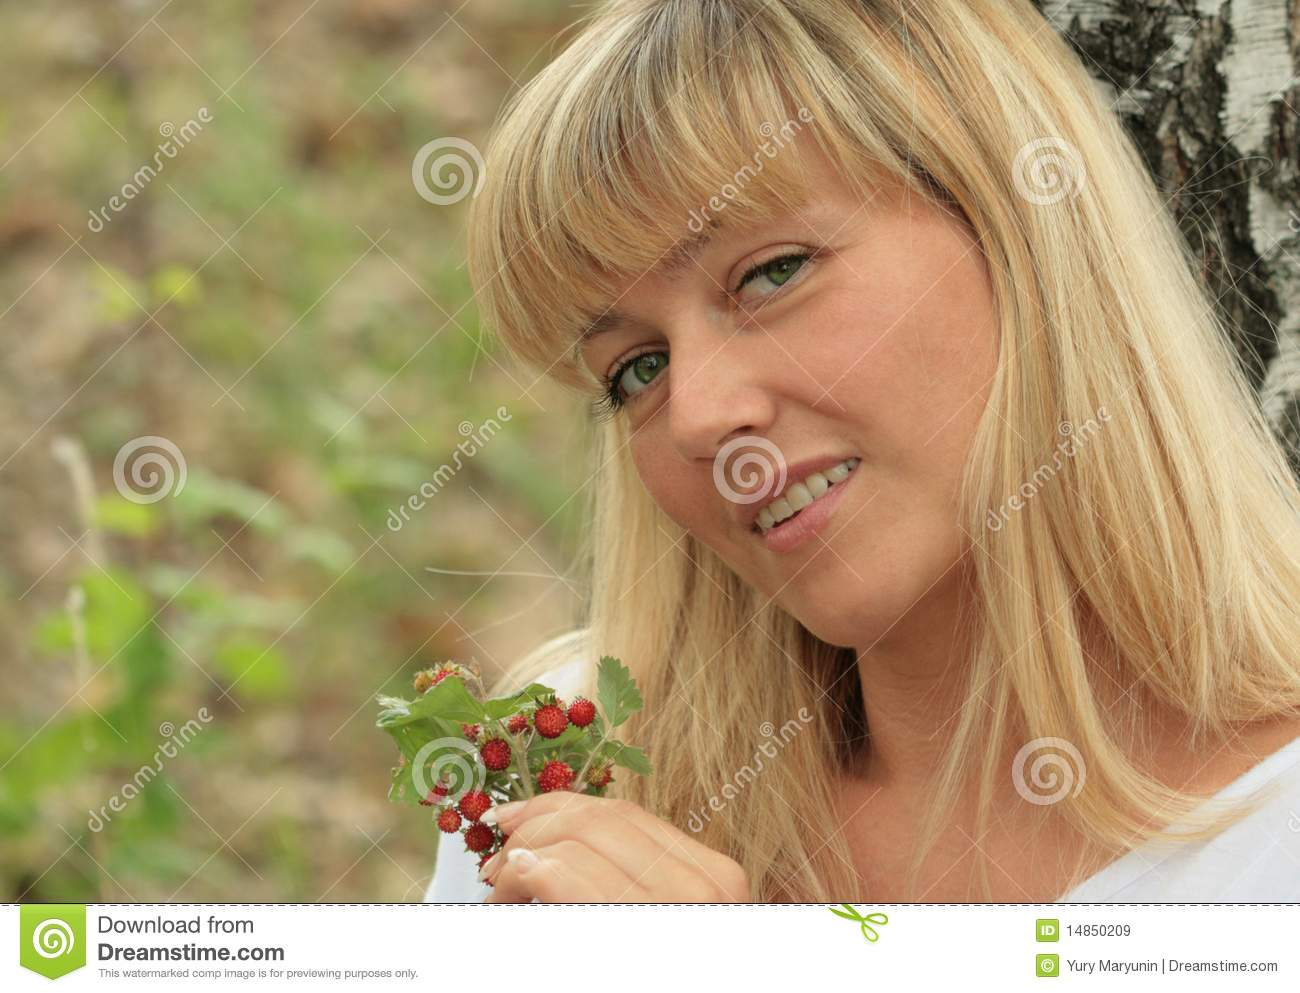 Portrait of the blonde with berries